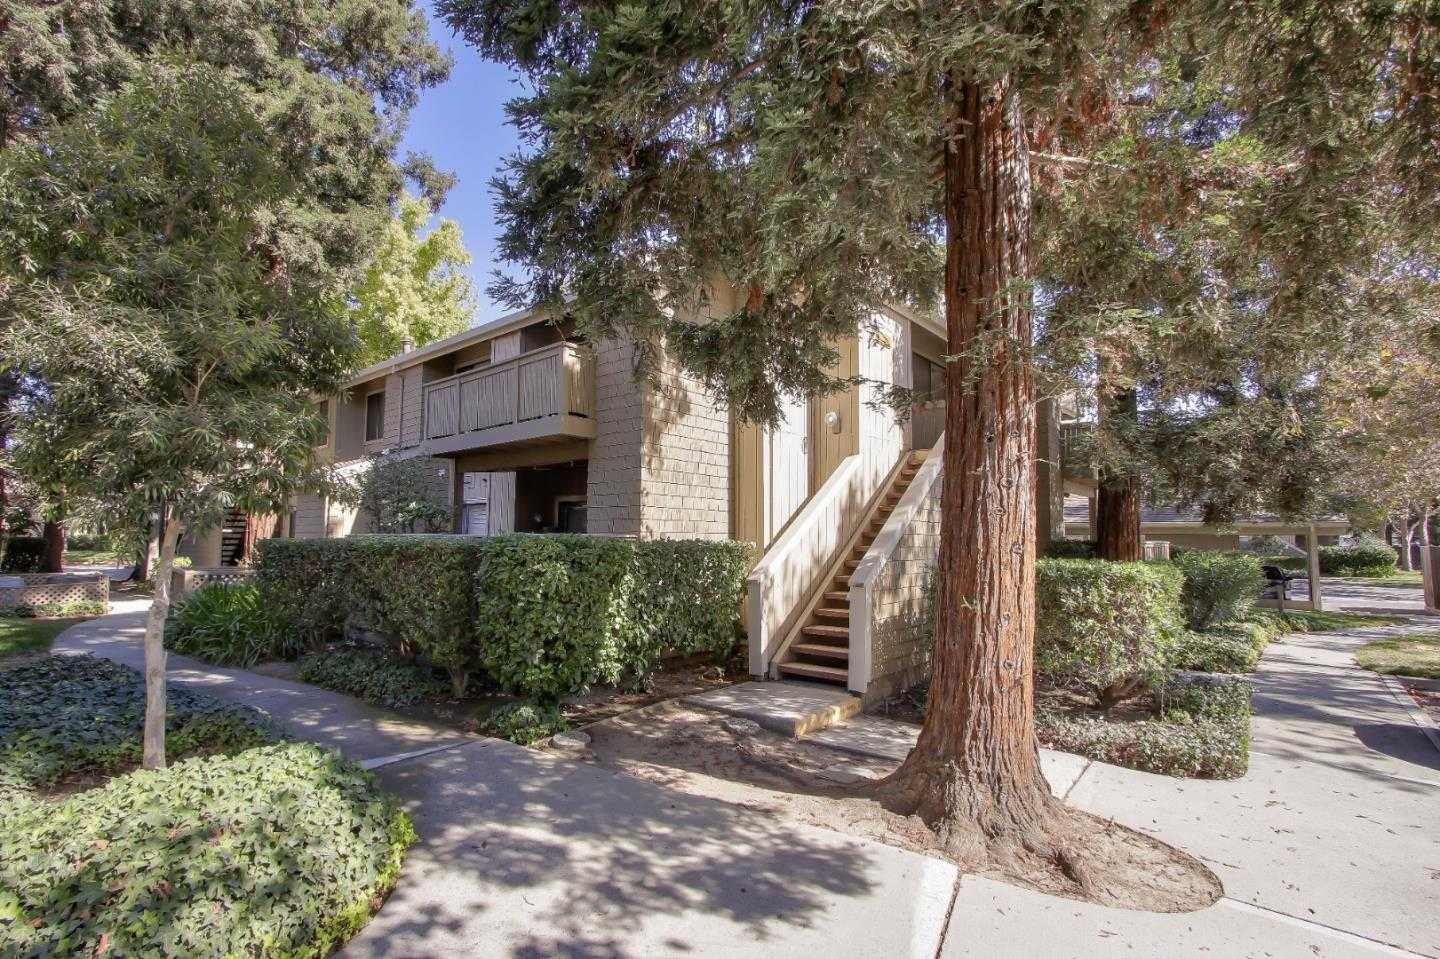 $469,000 - 1Br/1Ba -  for Sale in San Jose